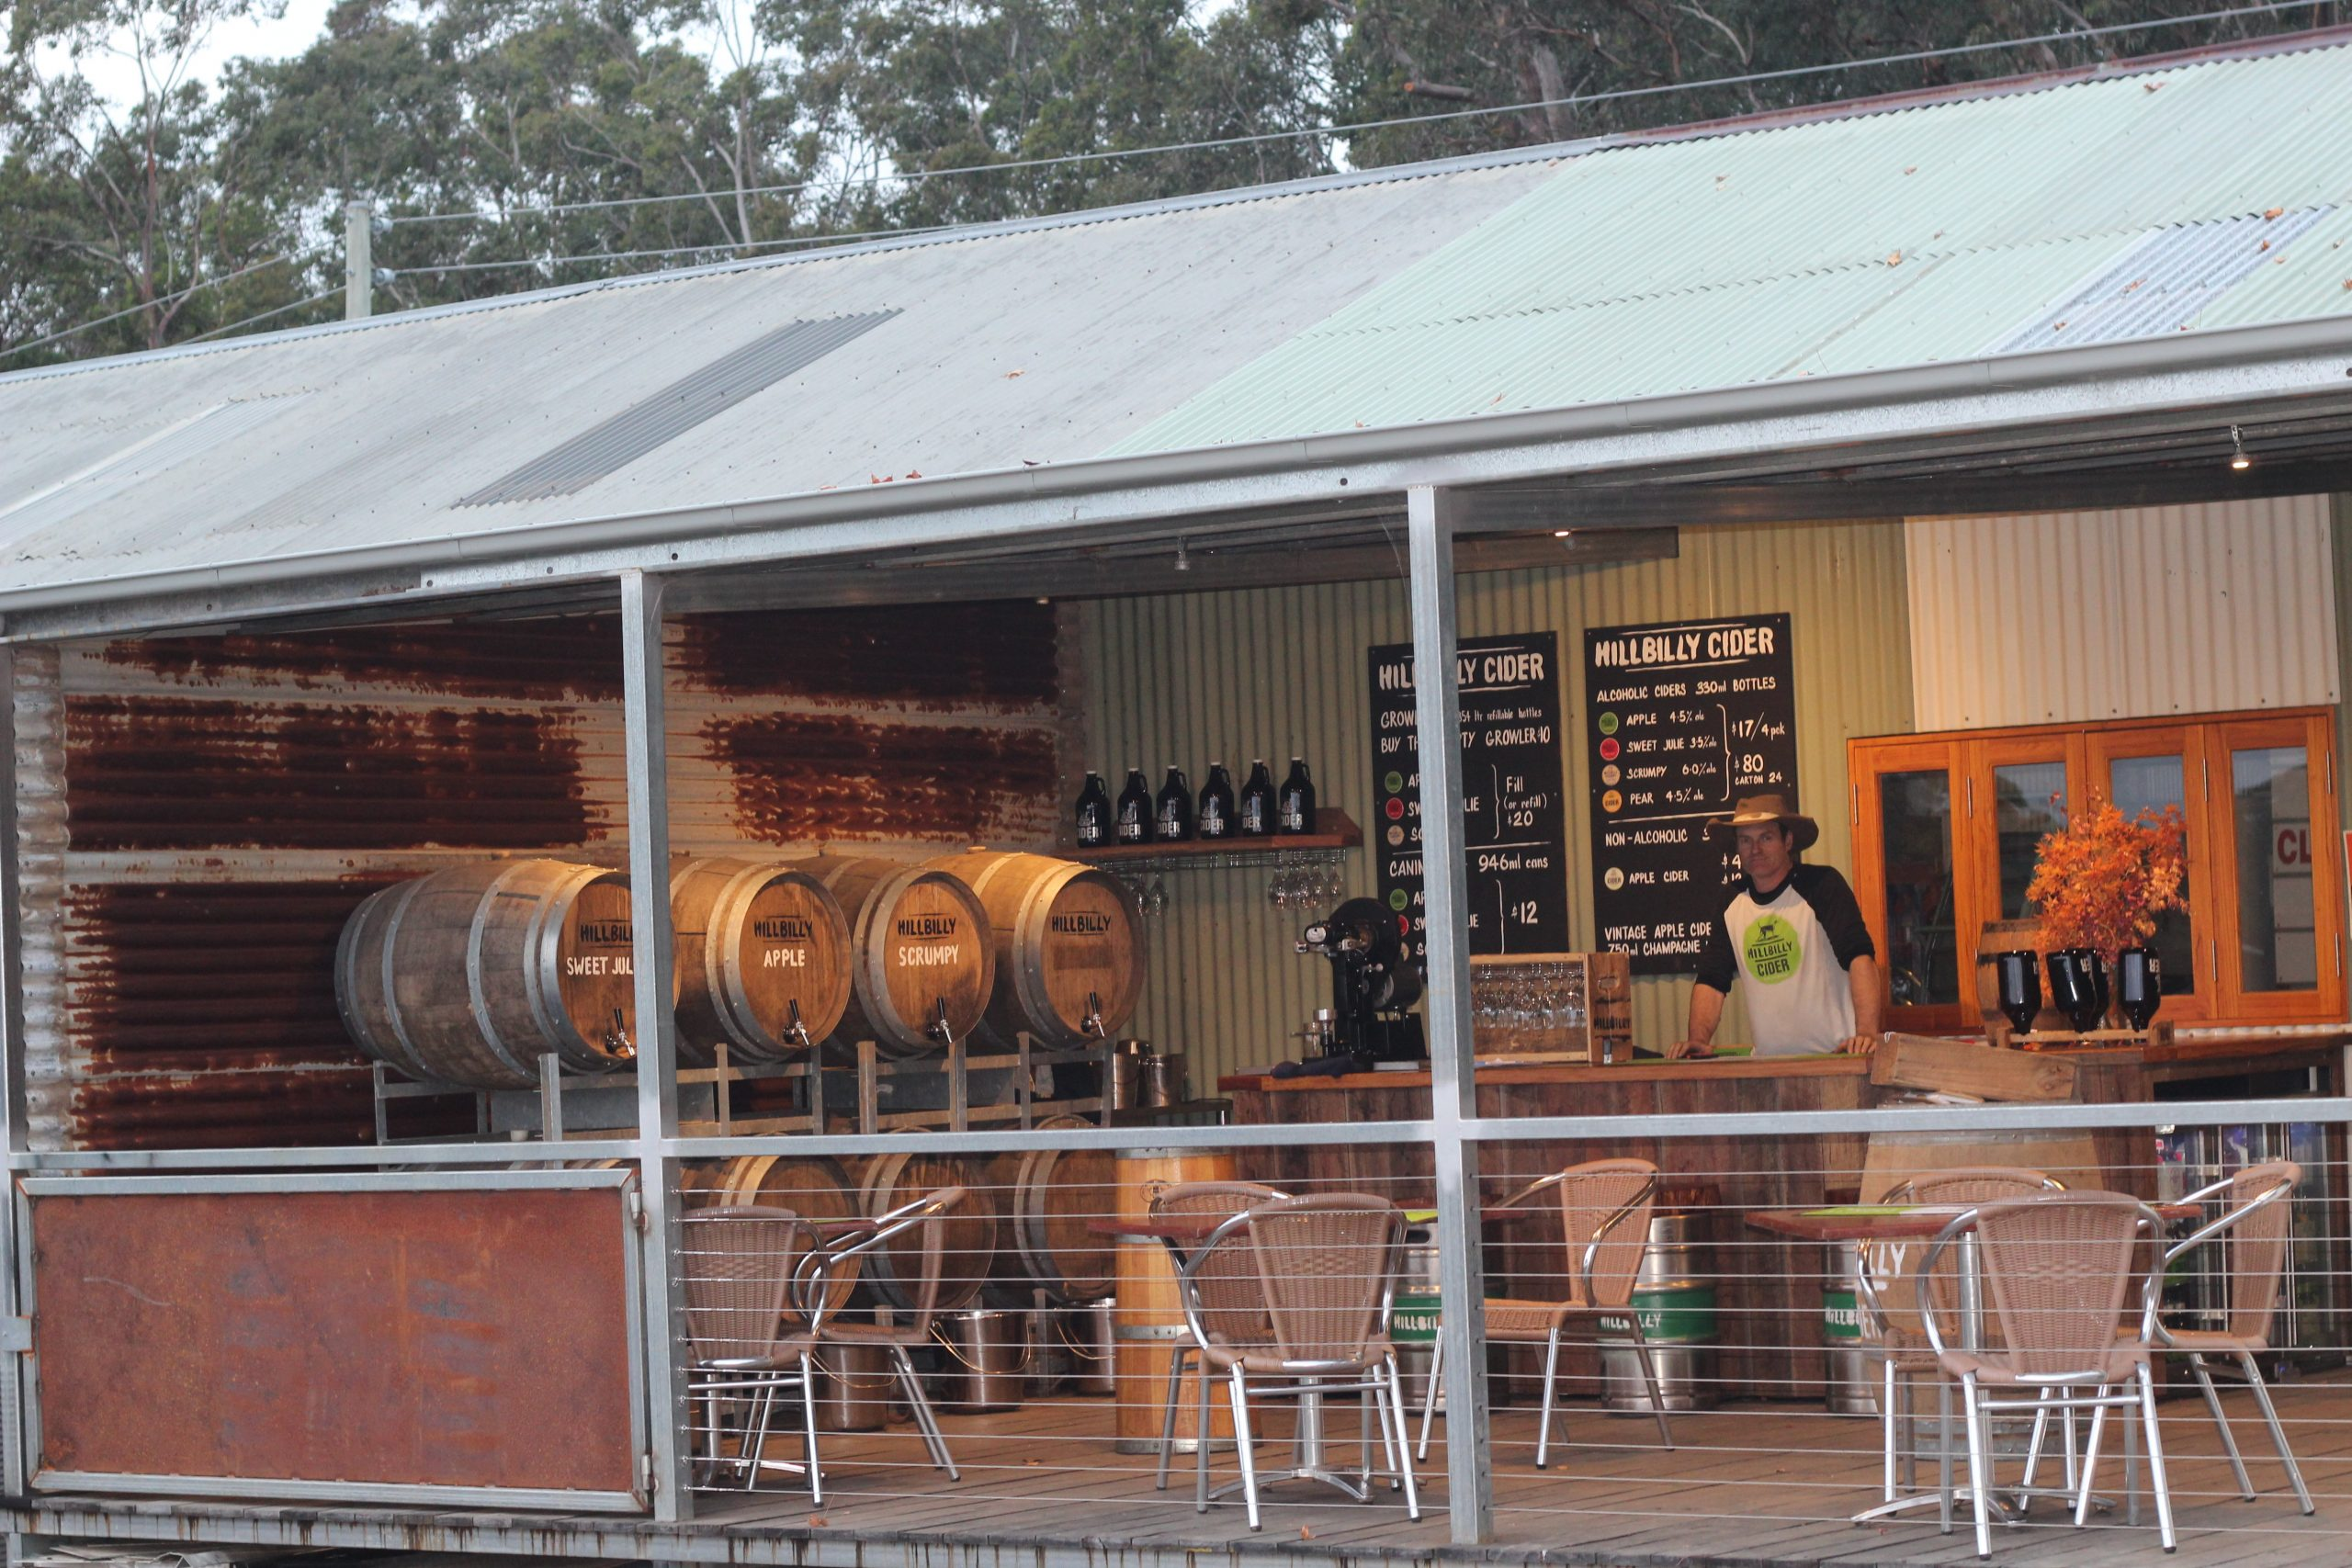 Qantas Magazine lists Hillbilly Cider shed as number 1 on the list.